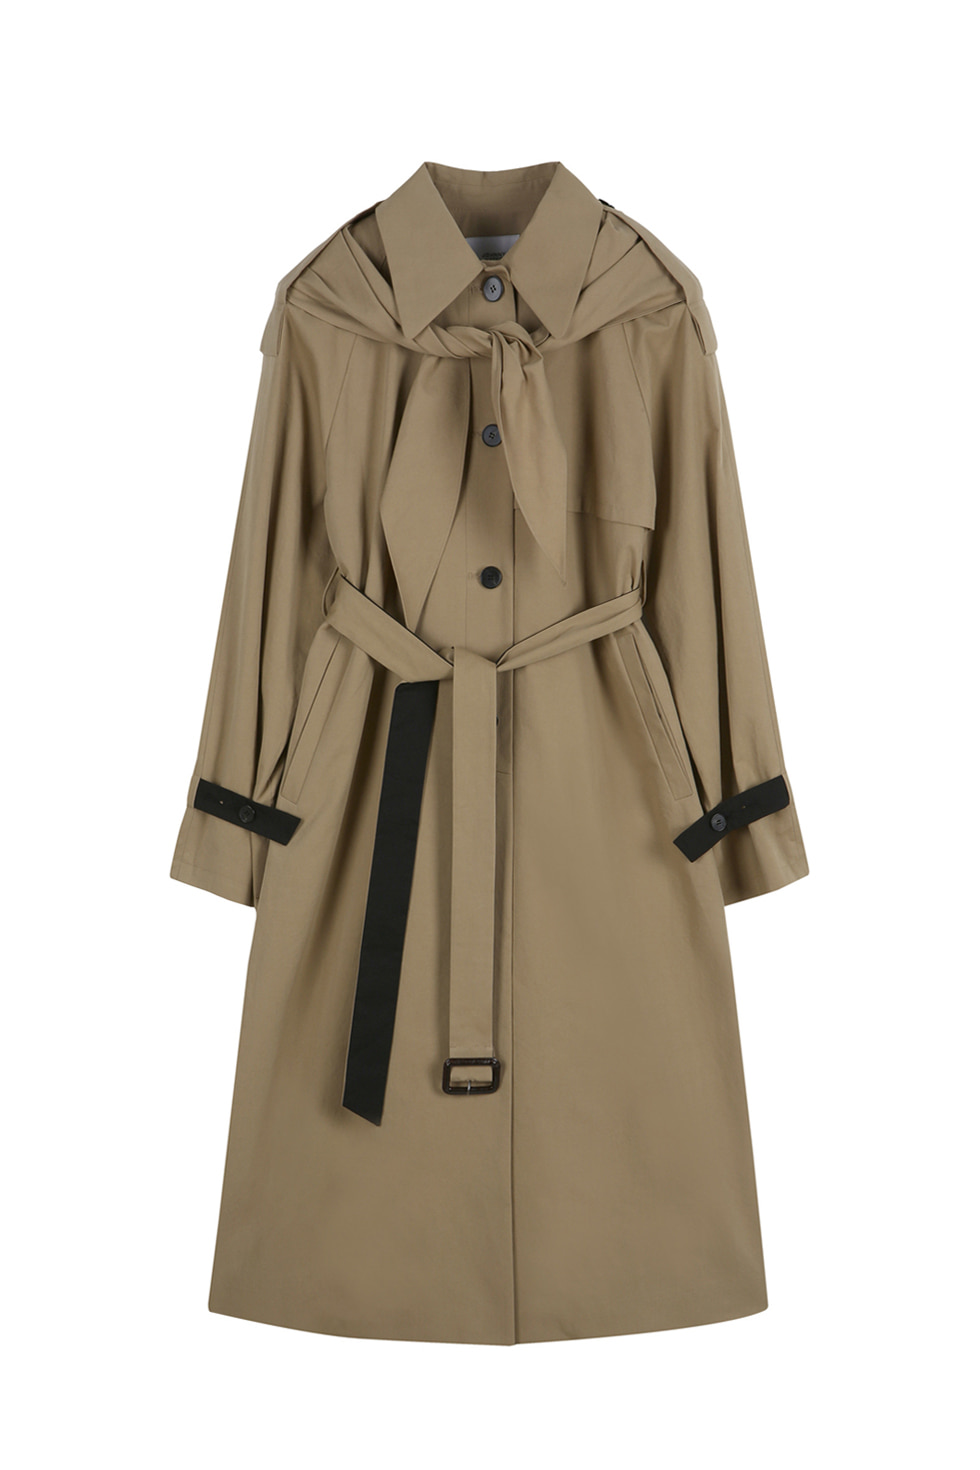 SCARF TRENCH - BEIGE